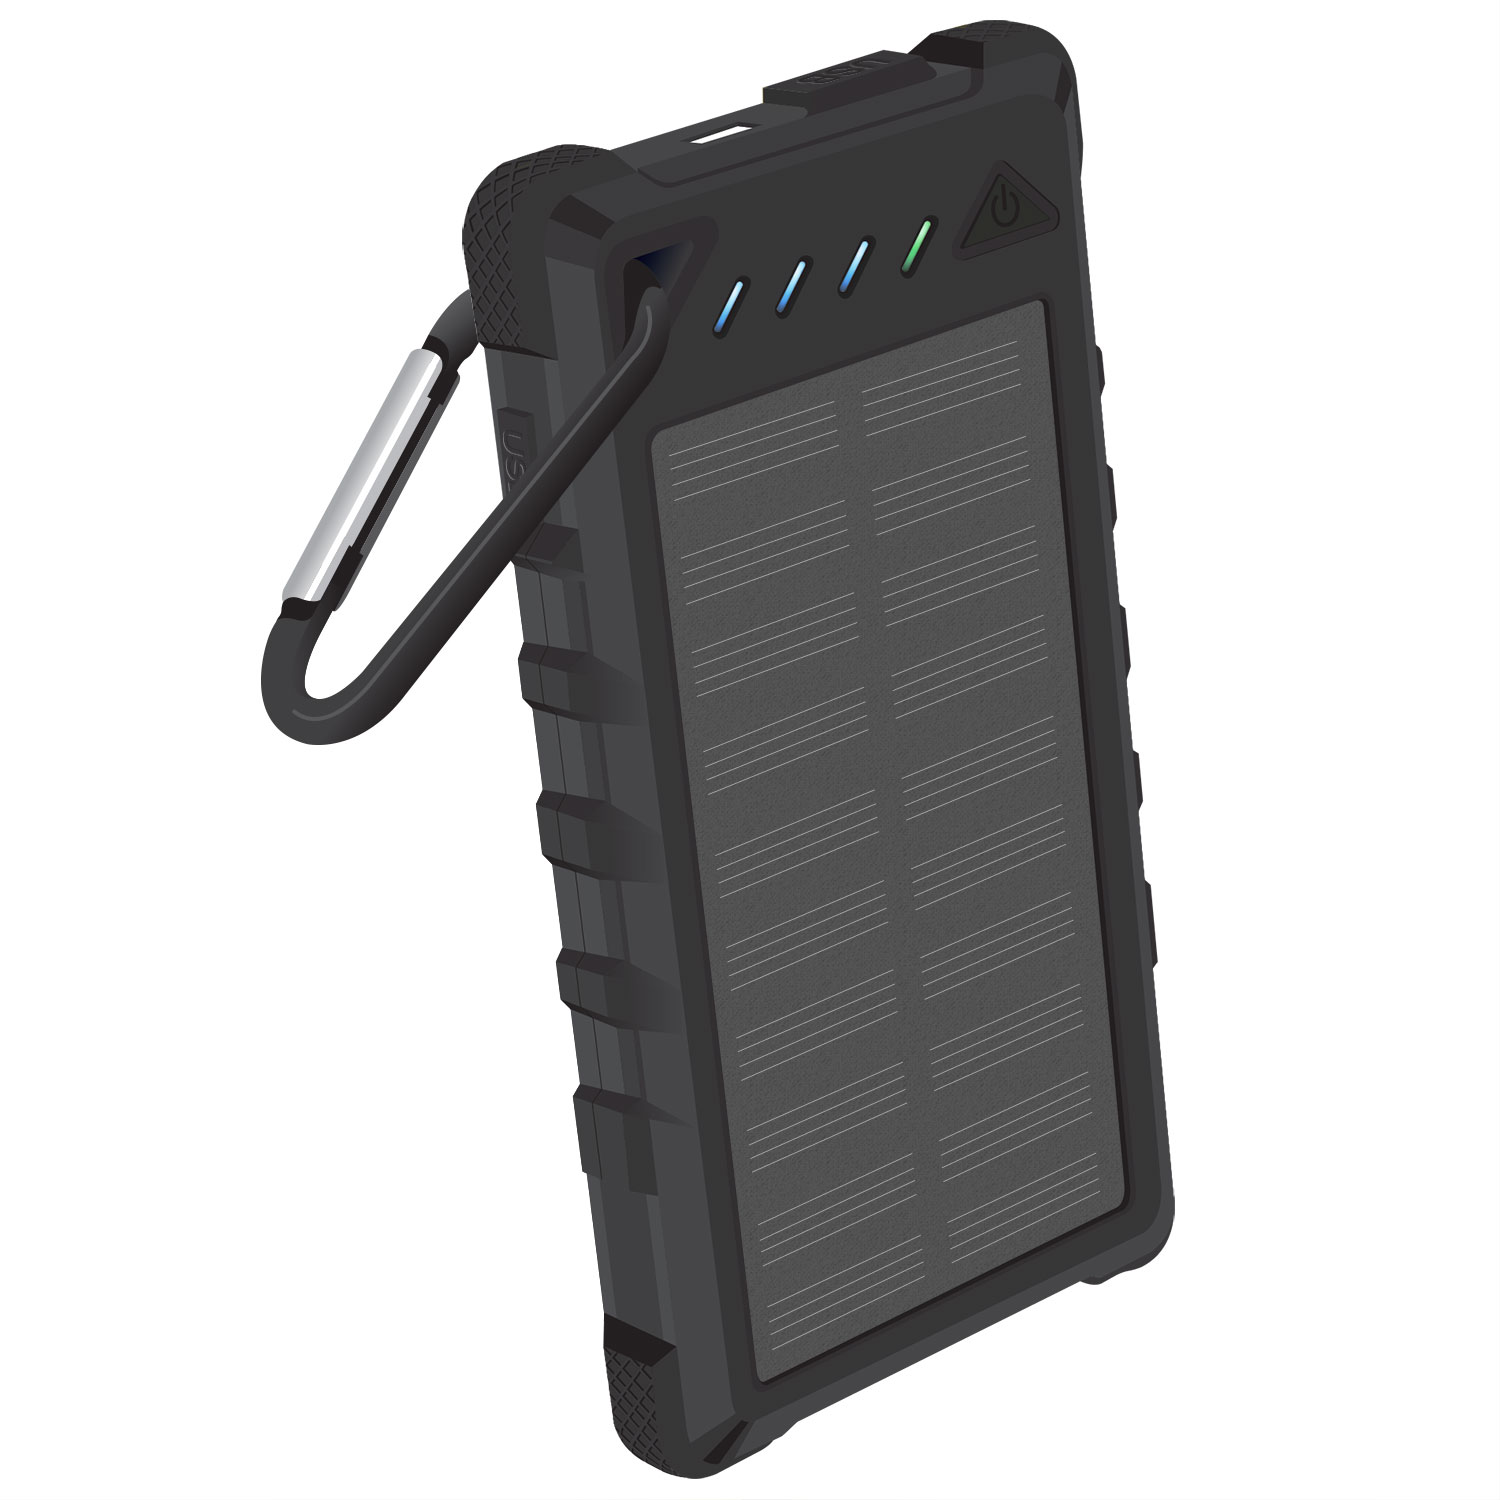 LG CF360 Solar Powered Portable PowerBank Black